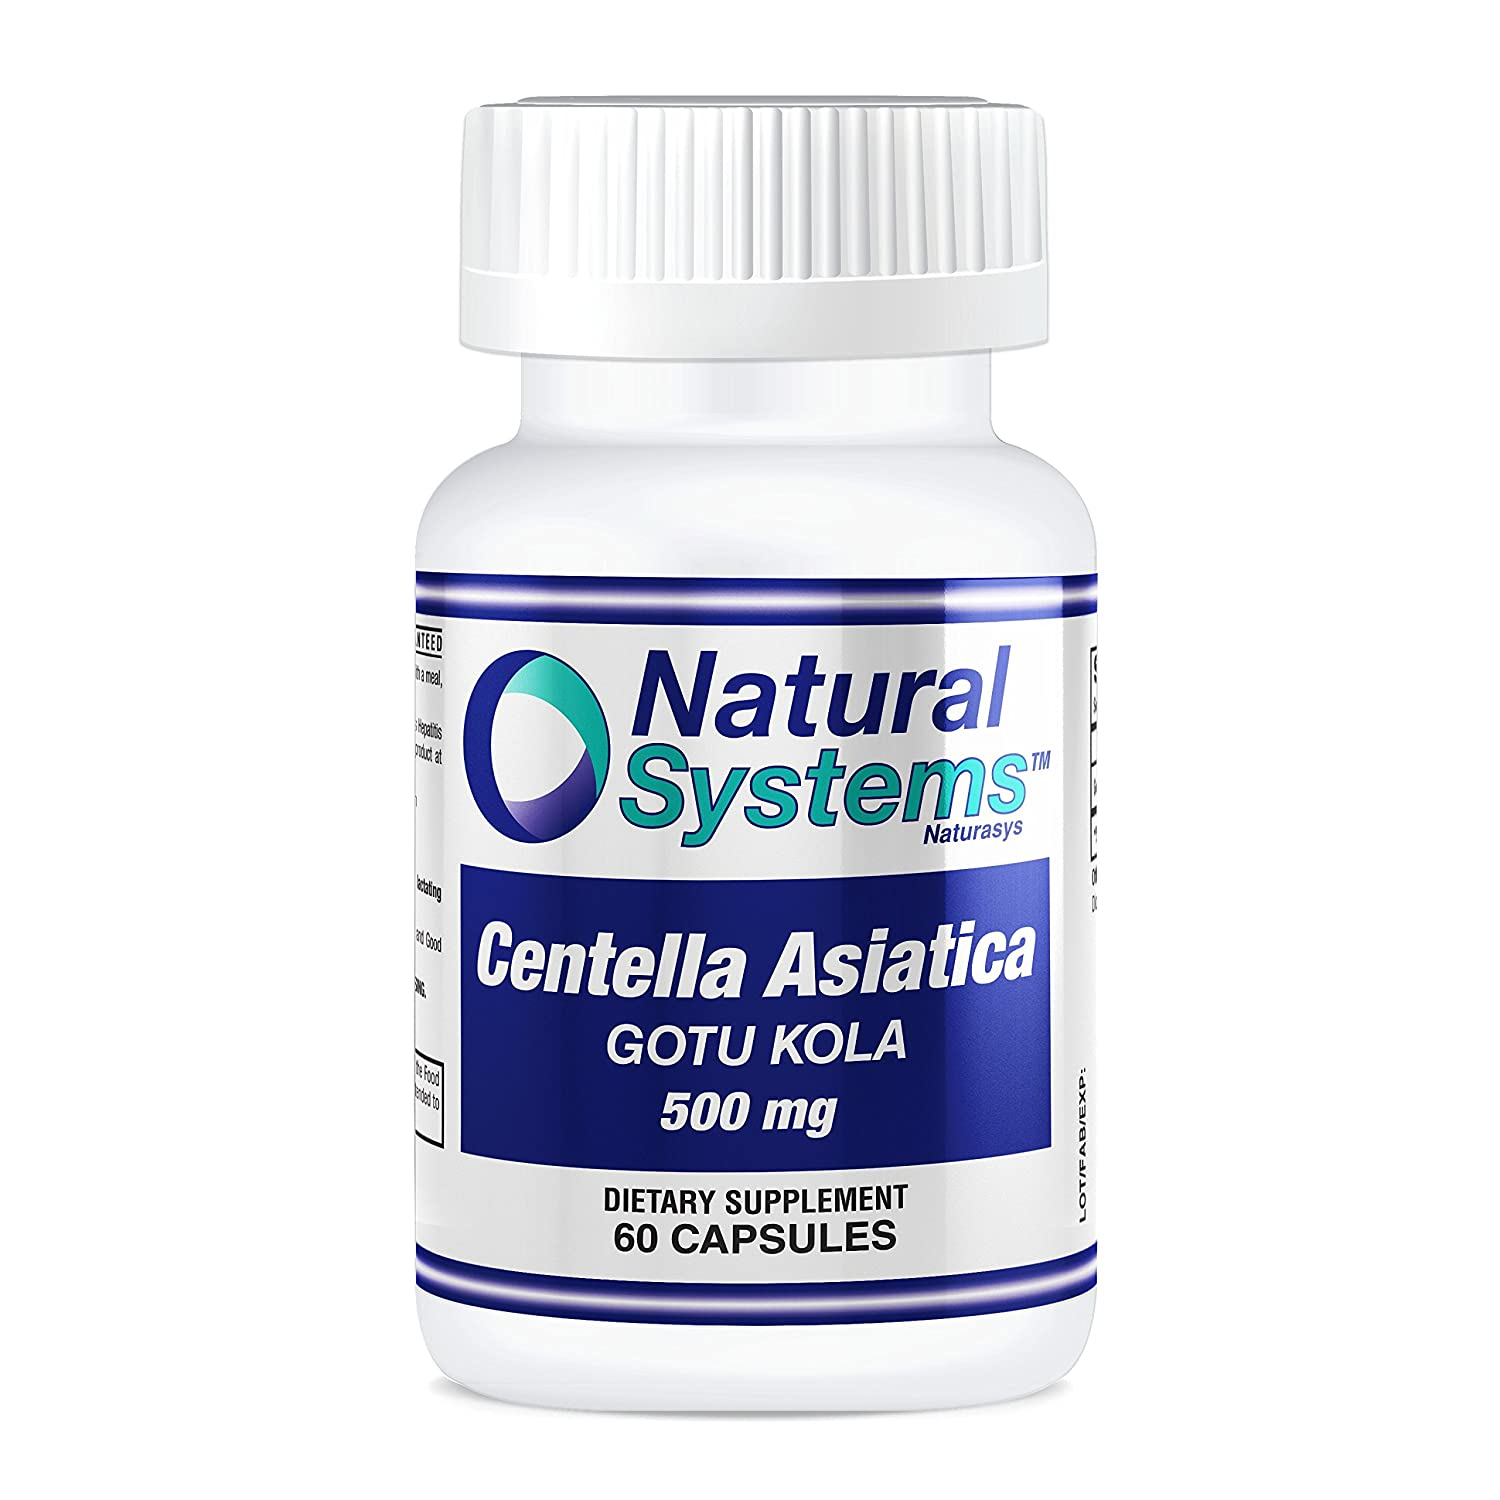 Amazon.com: Natural Systems. Centella Asiatica Gotu Kola 500mg 60 capsules: Health & Personal Care